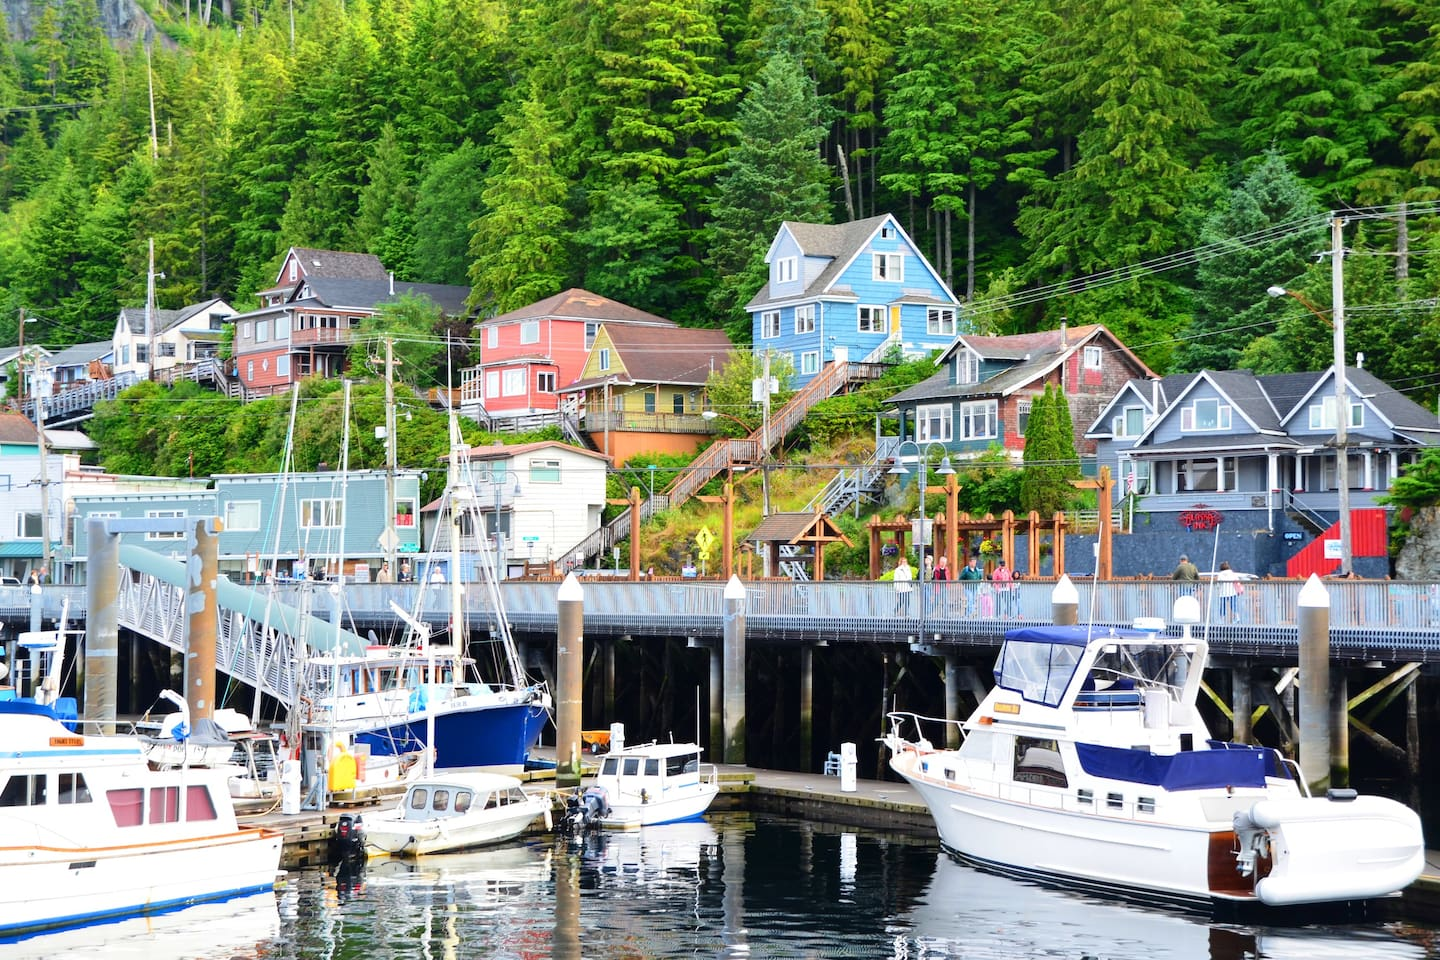 View of our historic Ketchikan home.  (Blue house with yellow door)